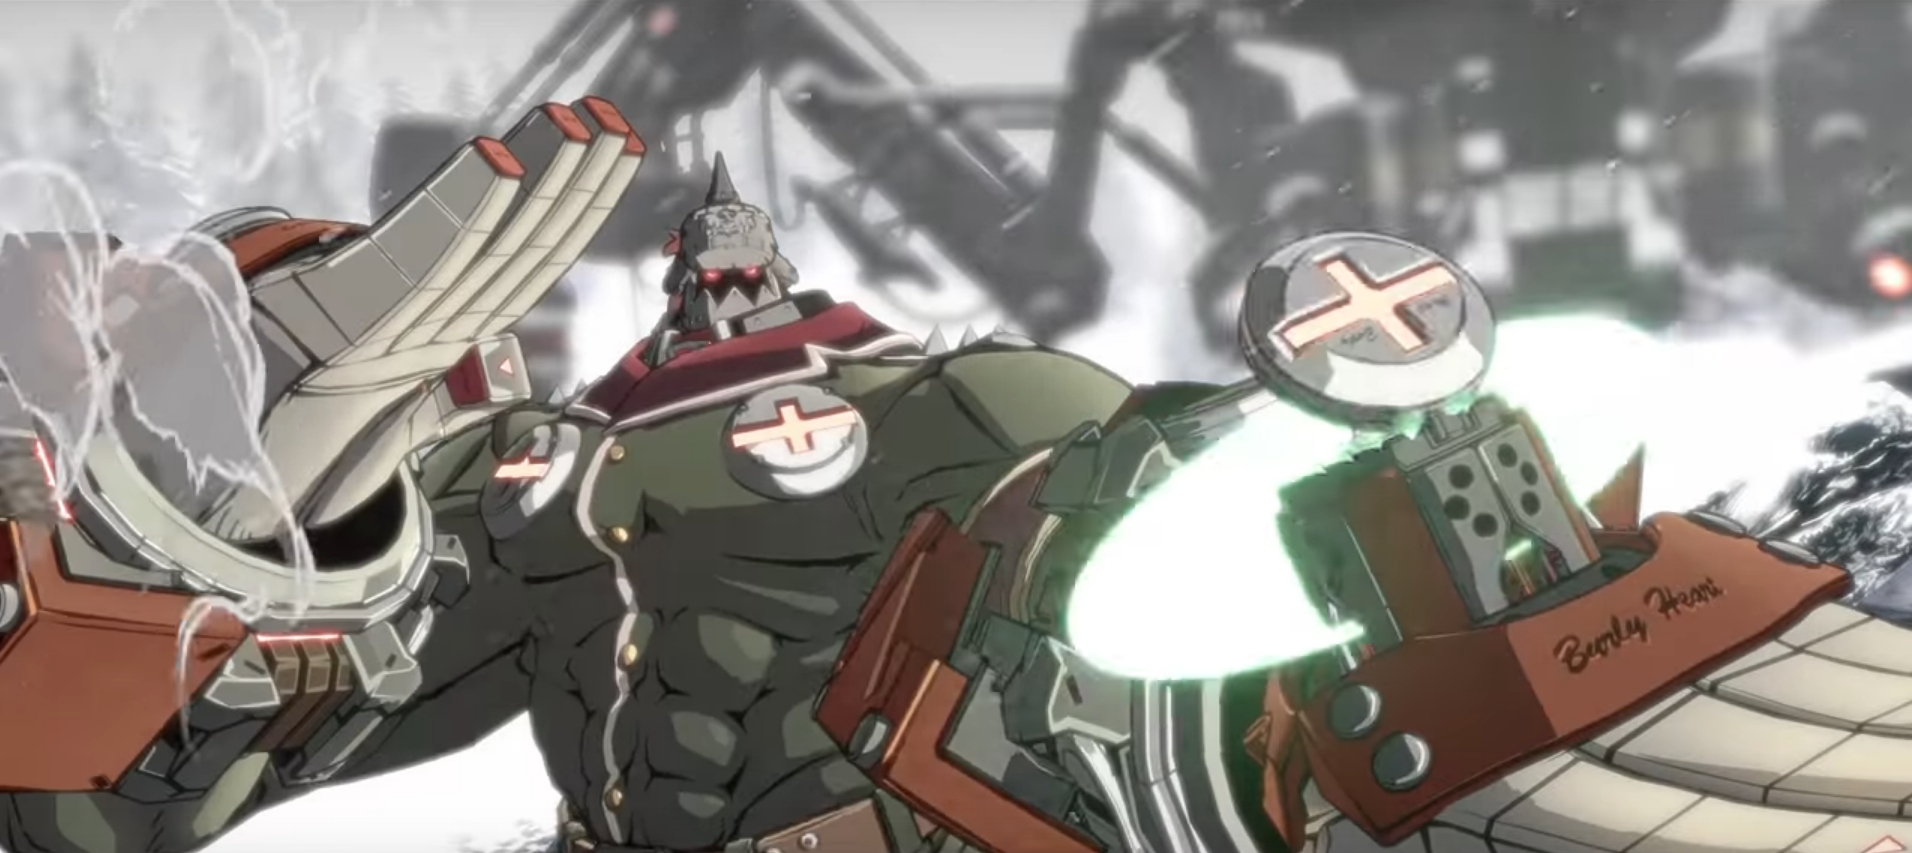 The Developers Behind The Heavy Metal Guilty Gear Strive Fighting Game Announce The Return Of The Crazy Faust Character